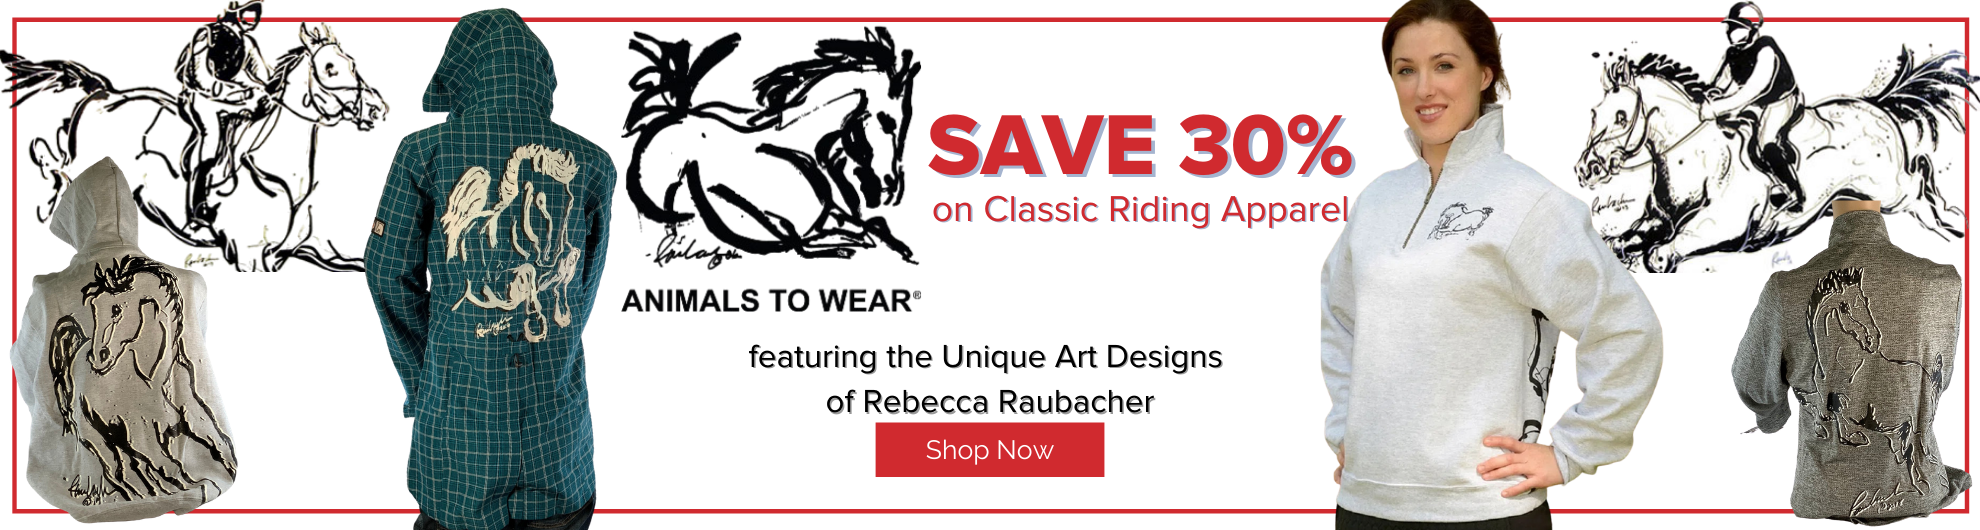 Save 30% on Animals to Wear Riding Apparel